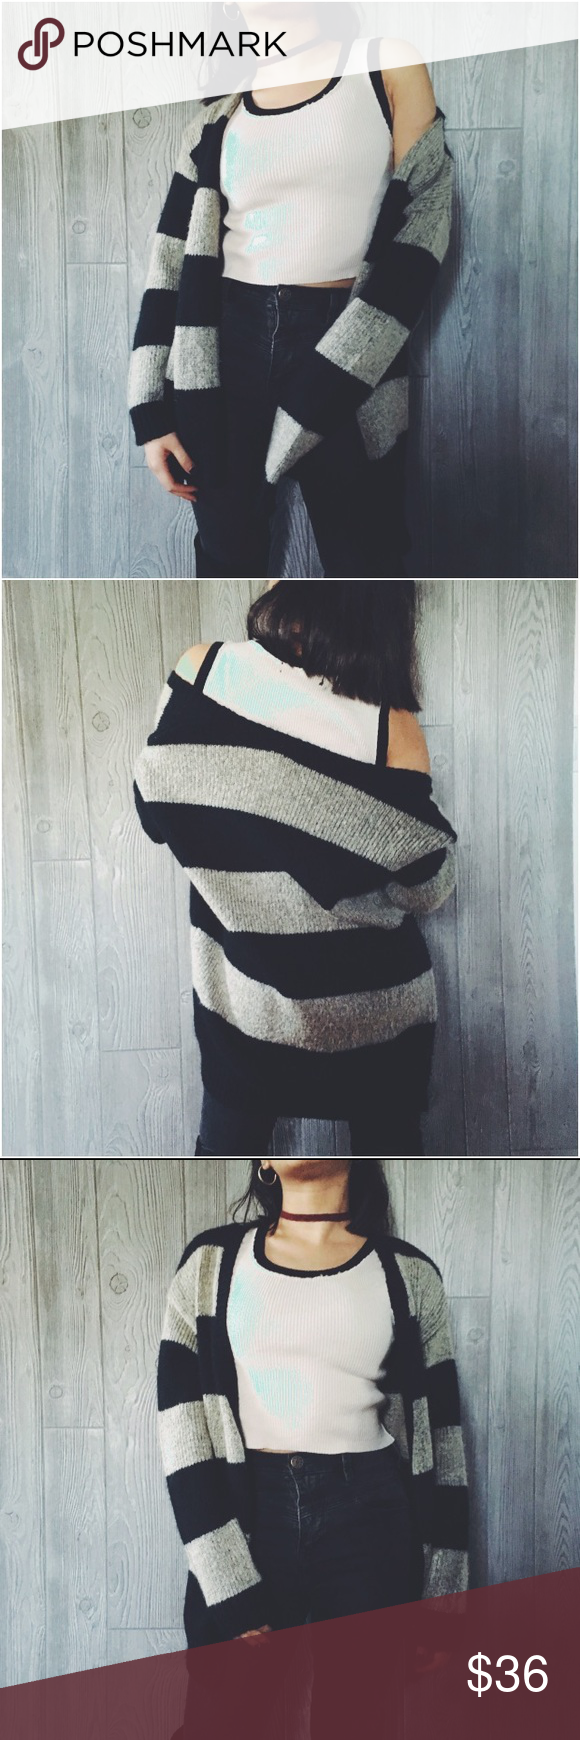 🆕 Striped Cardigan Striped Thick Sweater. This sweater screams cozy chic! pair it with a black graphic tee, large hoops, and jeans for the ultimate look. Bundle to save ❤️ vintage Urban Outfitters Sweaters Cardigans